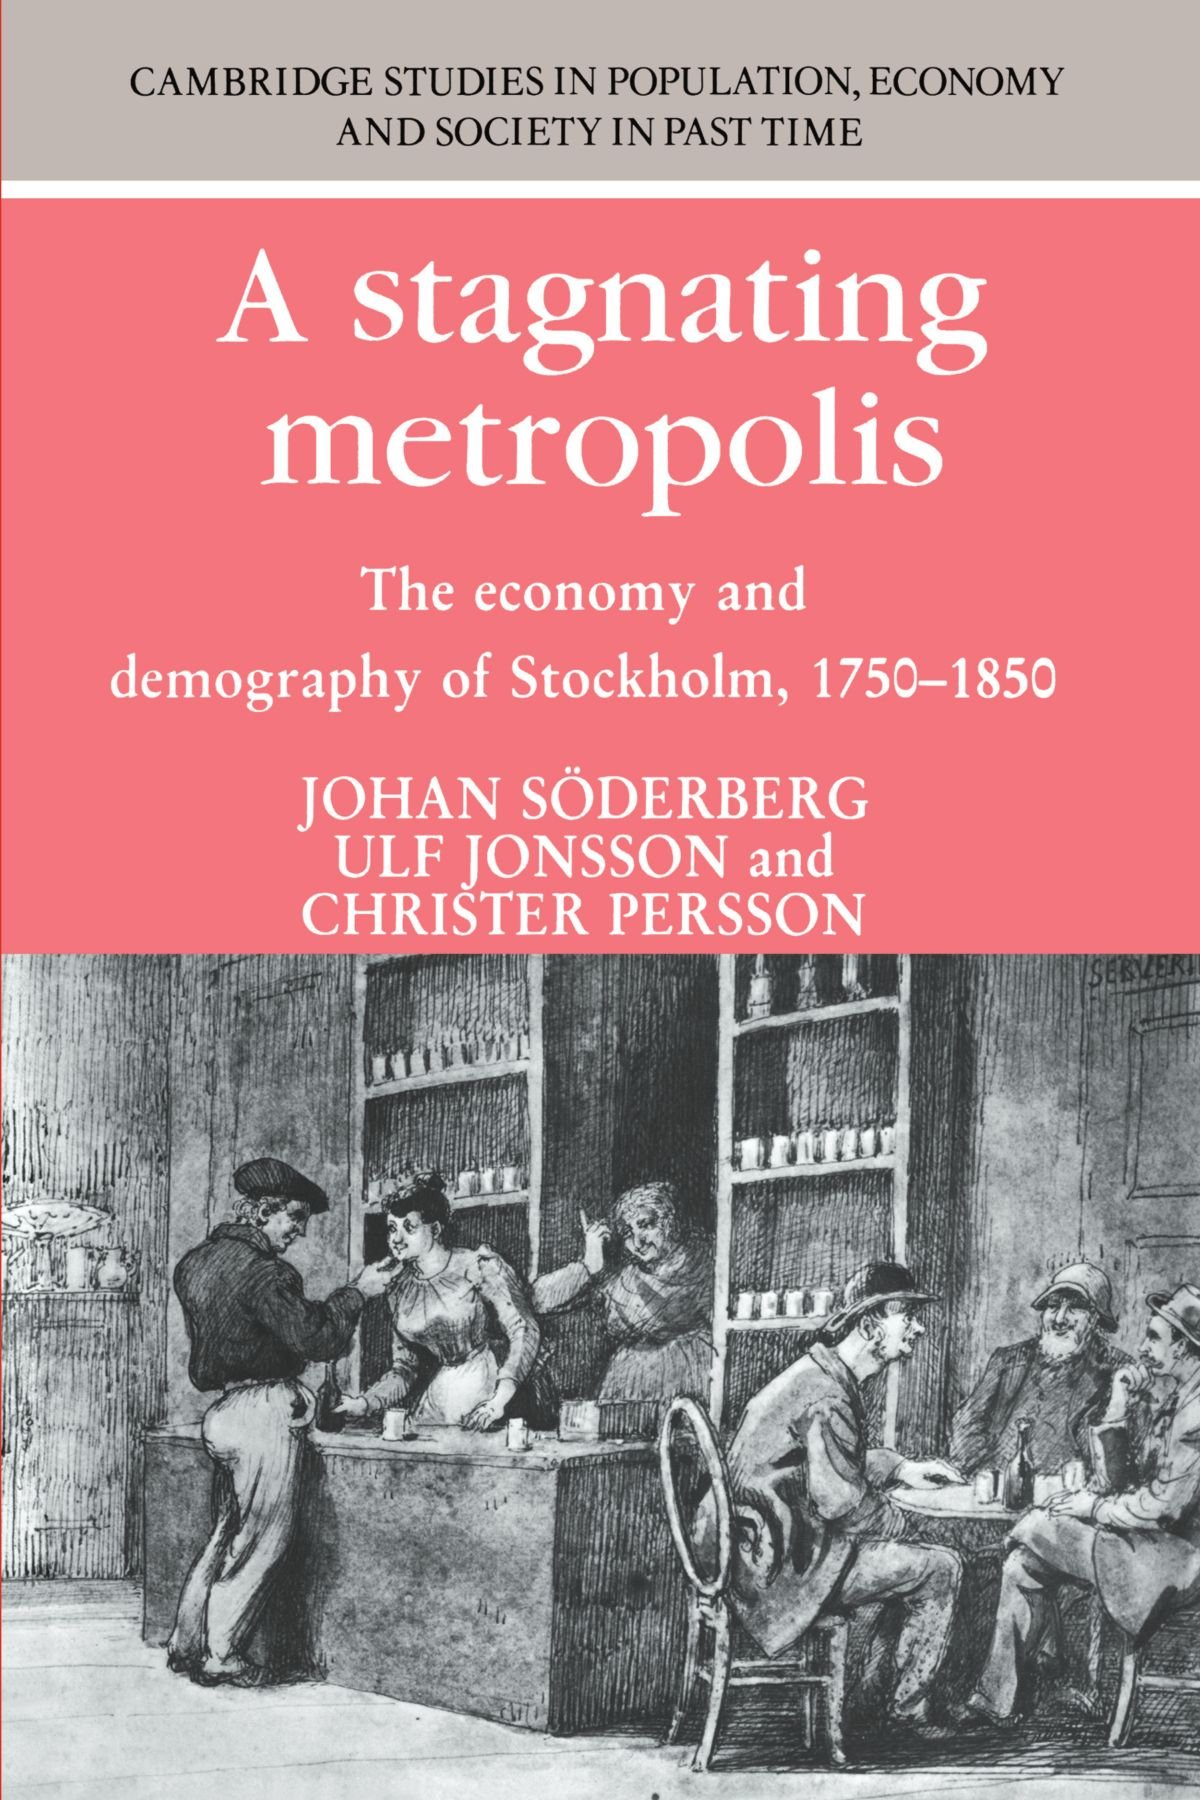 A Stagnating Metropolis: The Economy and Demography of Stockholm, 1750-1850 (Cambridge Studies in Population, Economy and Society in Past Time)